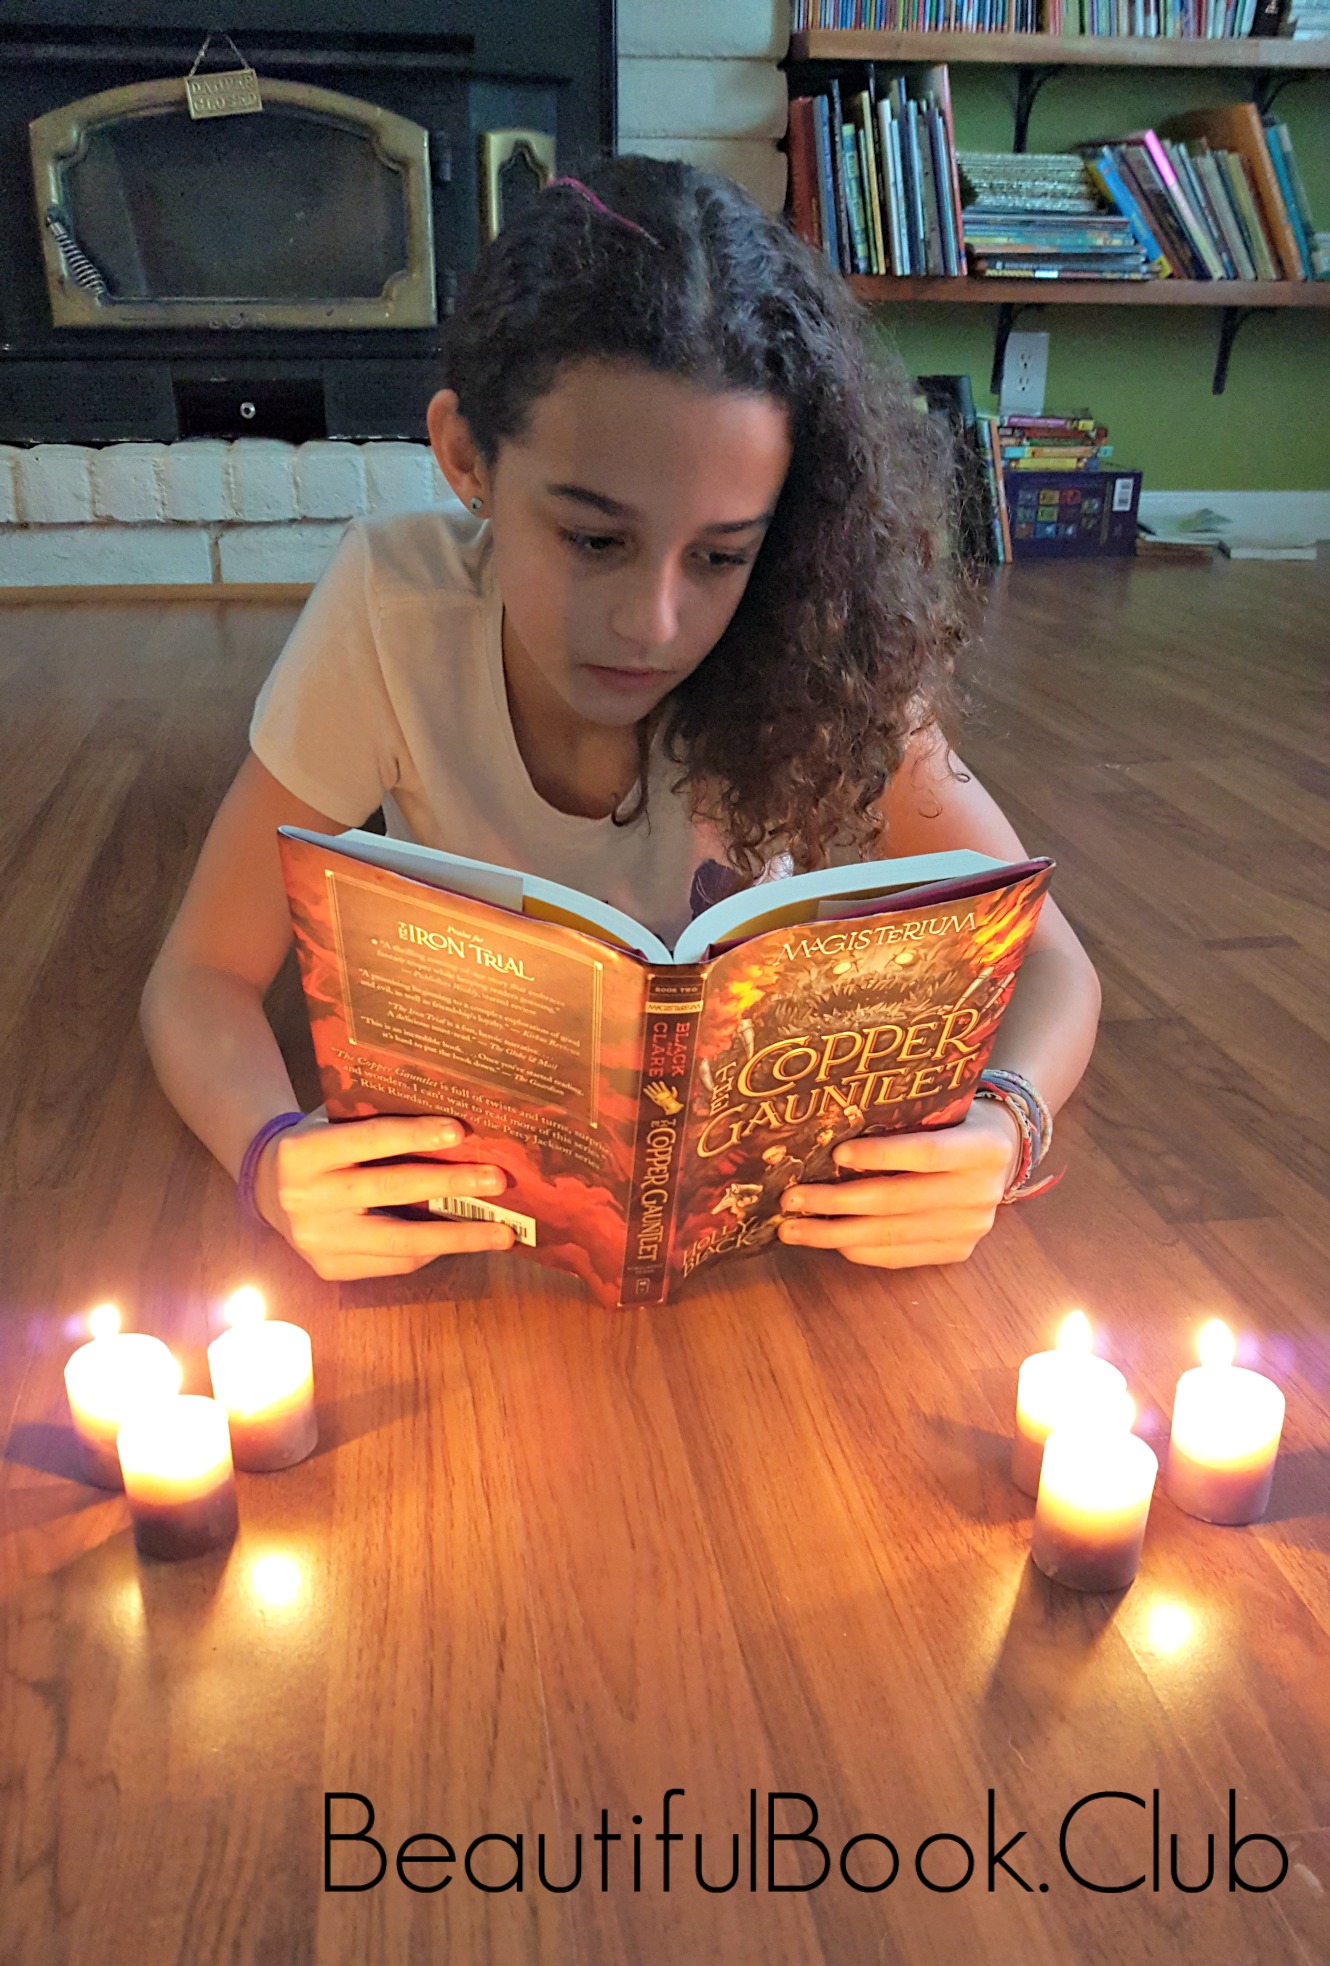 Me with The Copper Gauntlet Book with candles